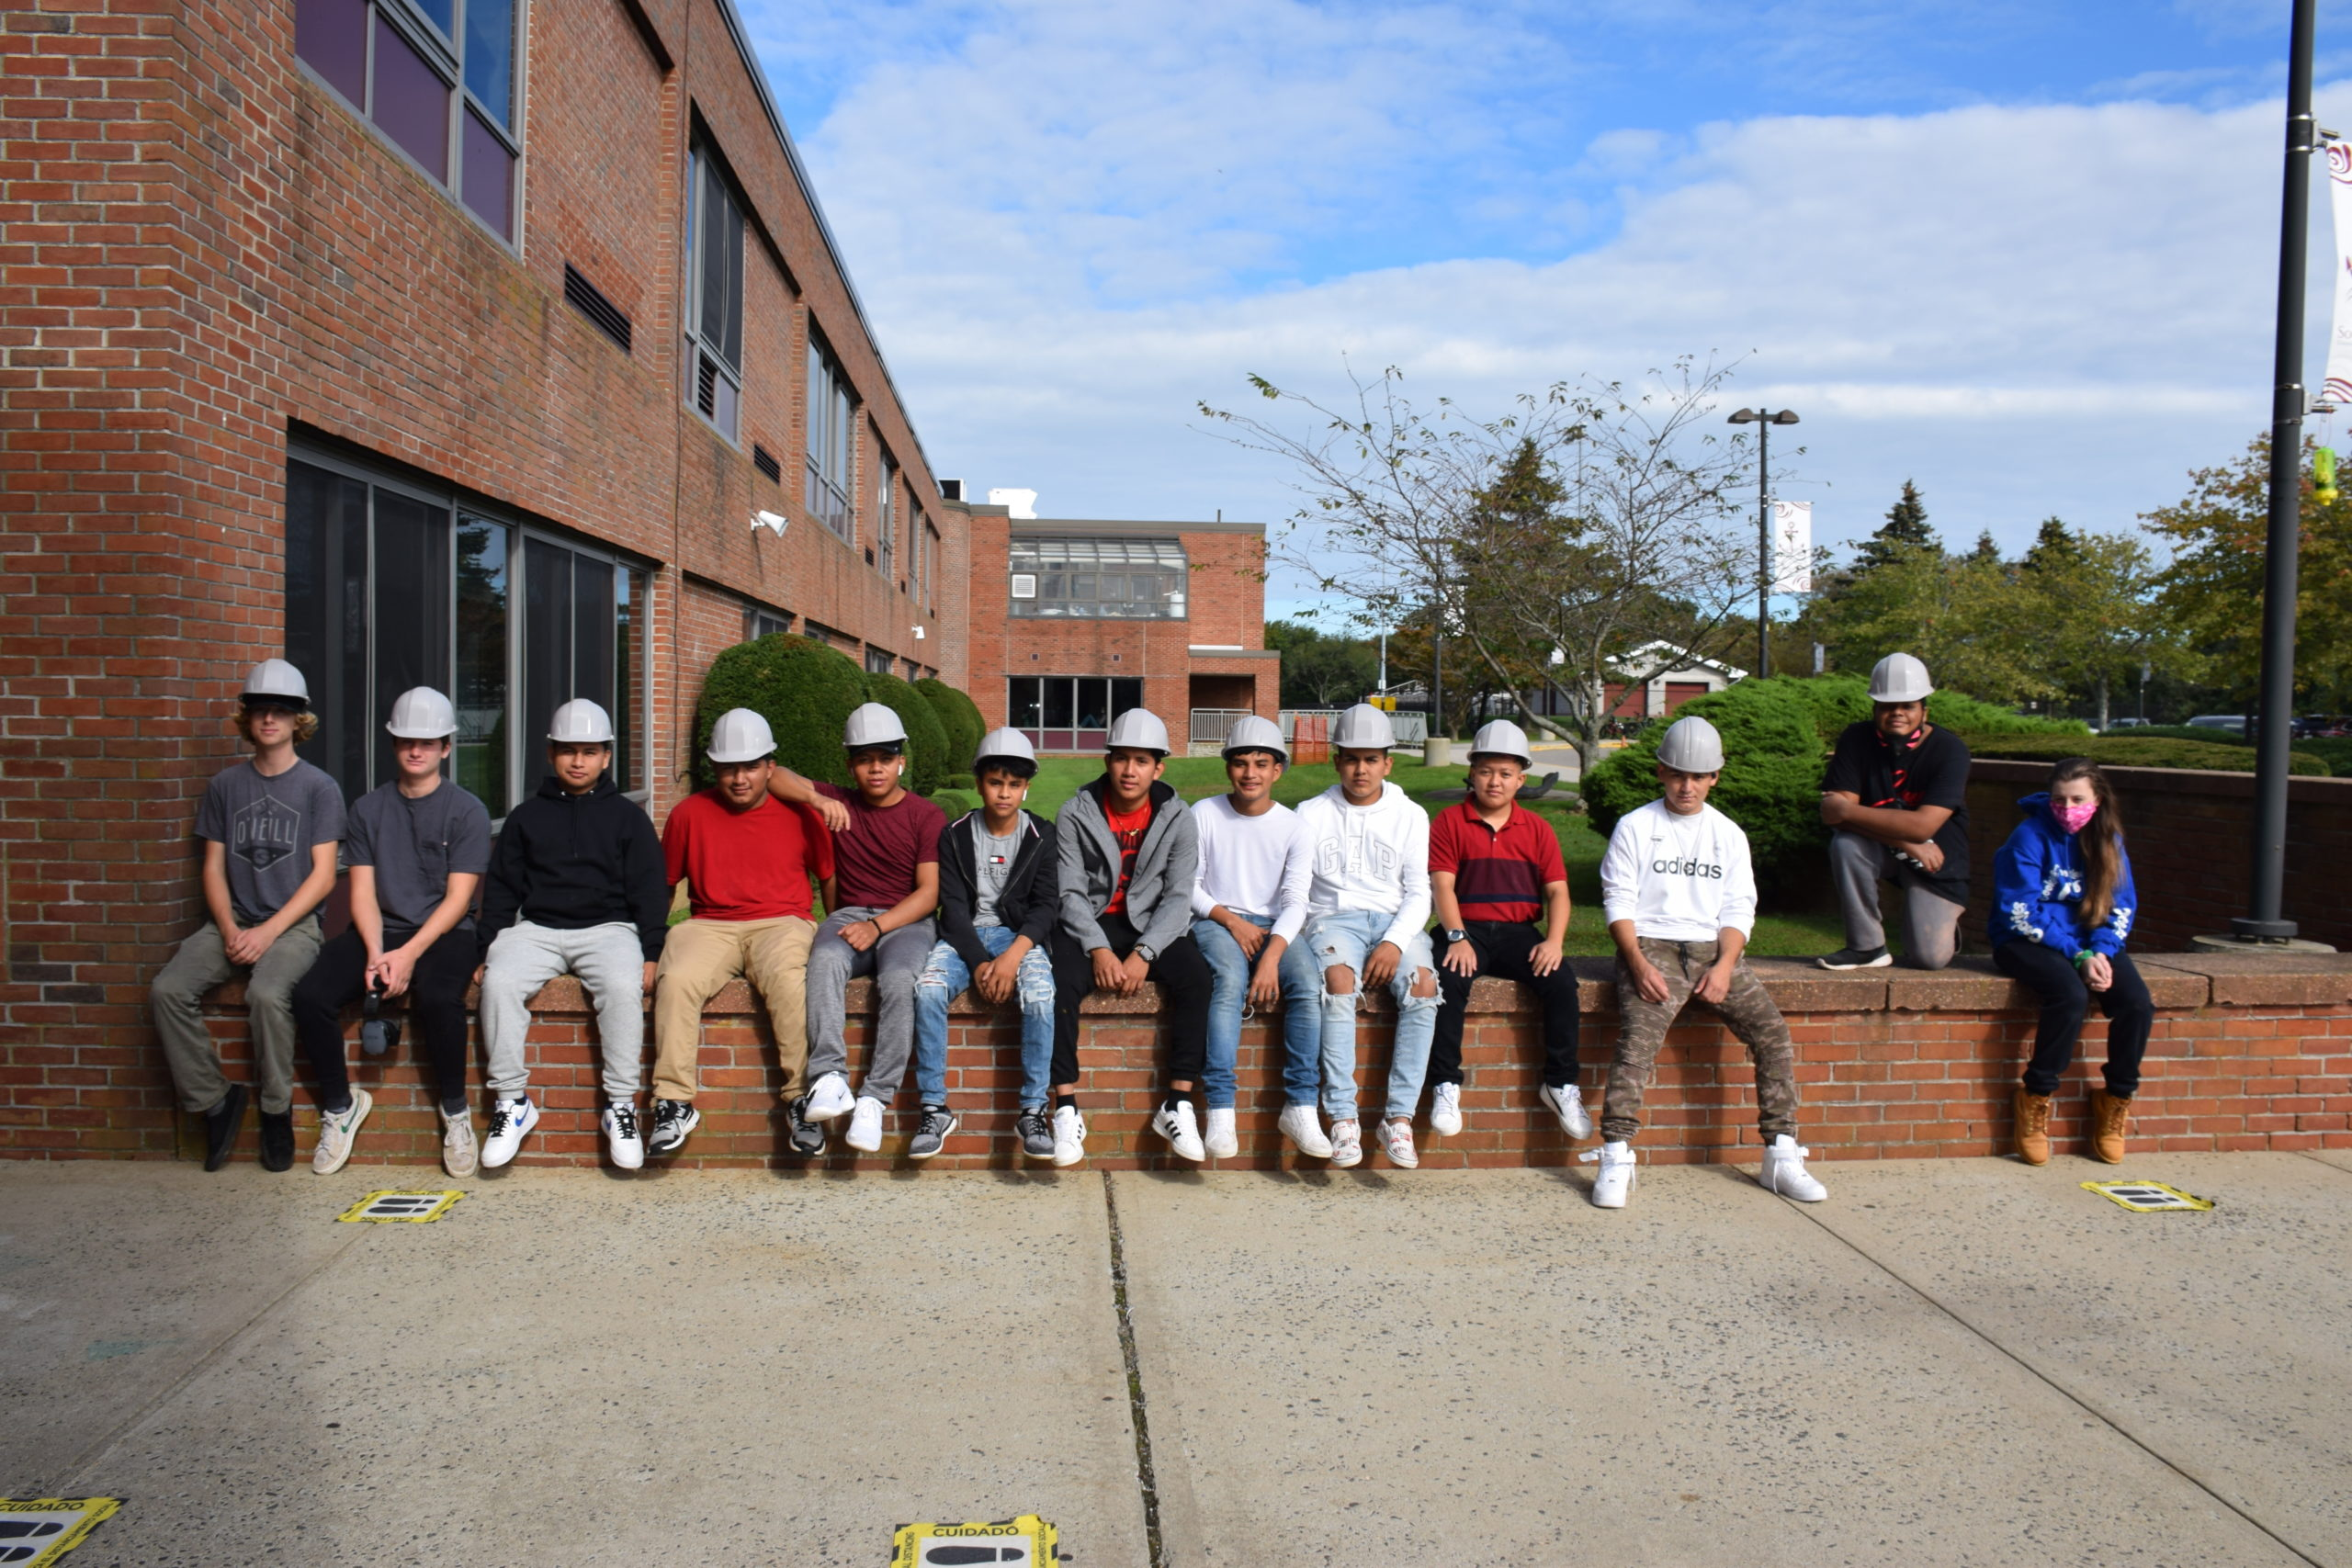 Thirteen Southampton High School students enrolled in Eastern Suffolk BOCES' carpentry program earned scholarship funds from the Southampton Business Alliance.